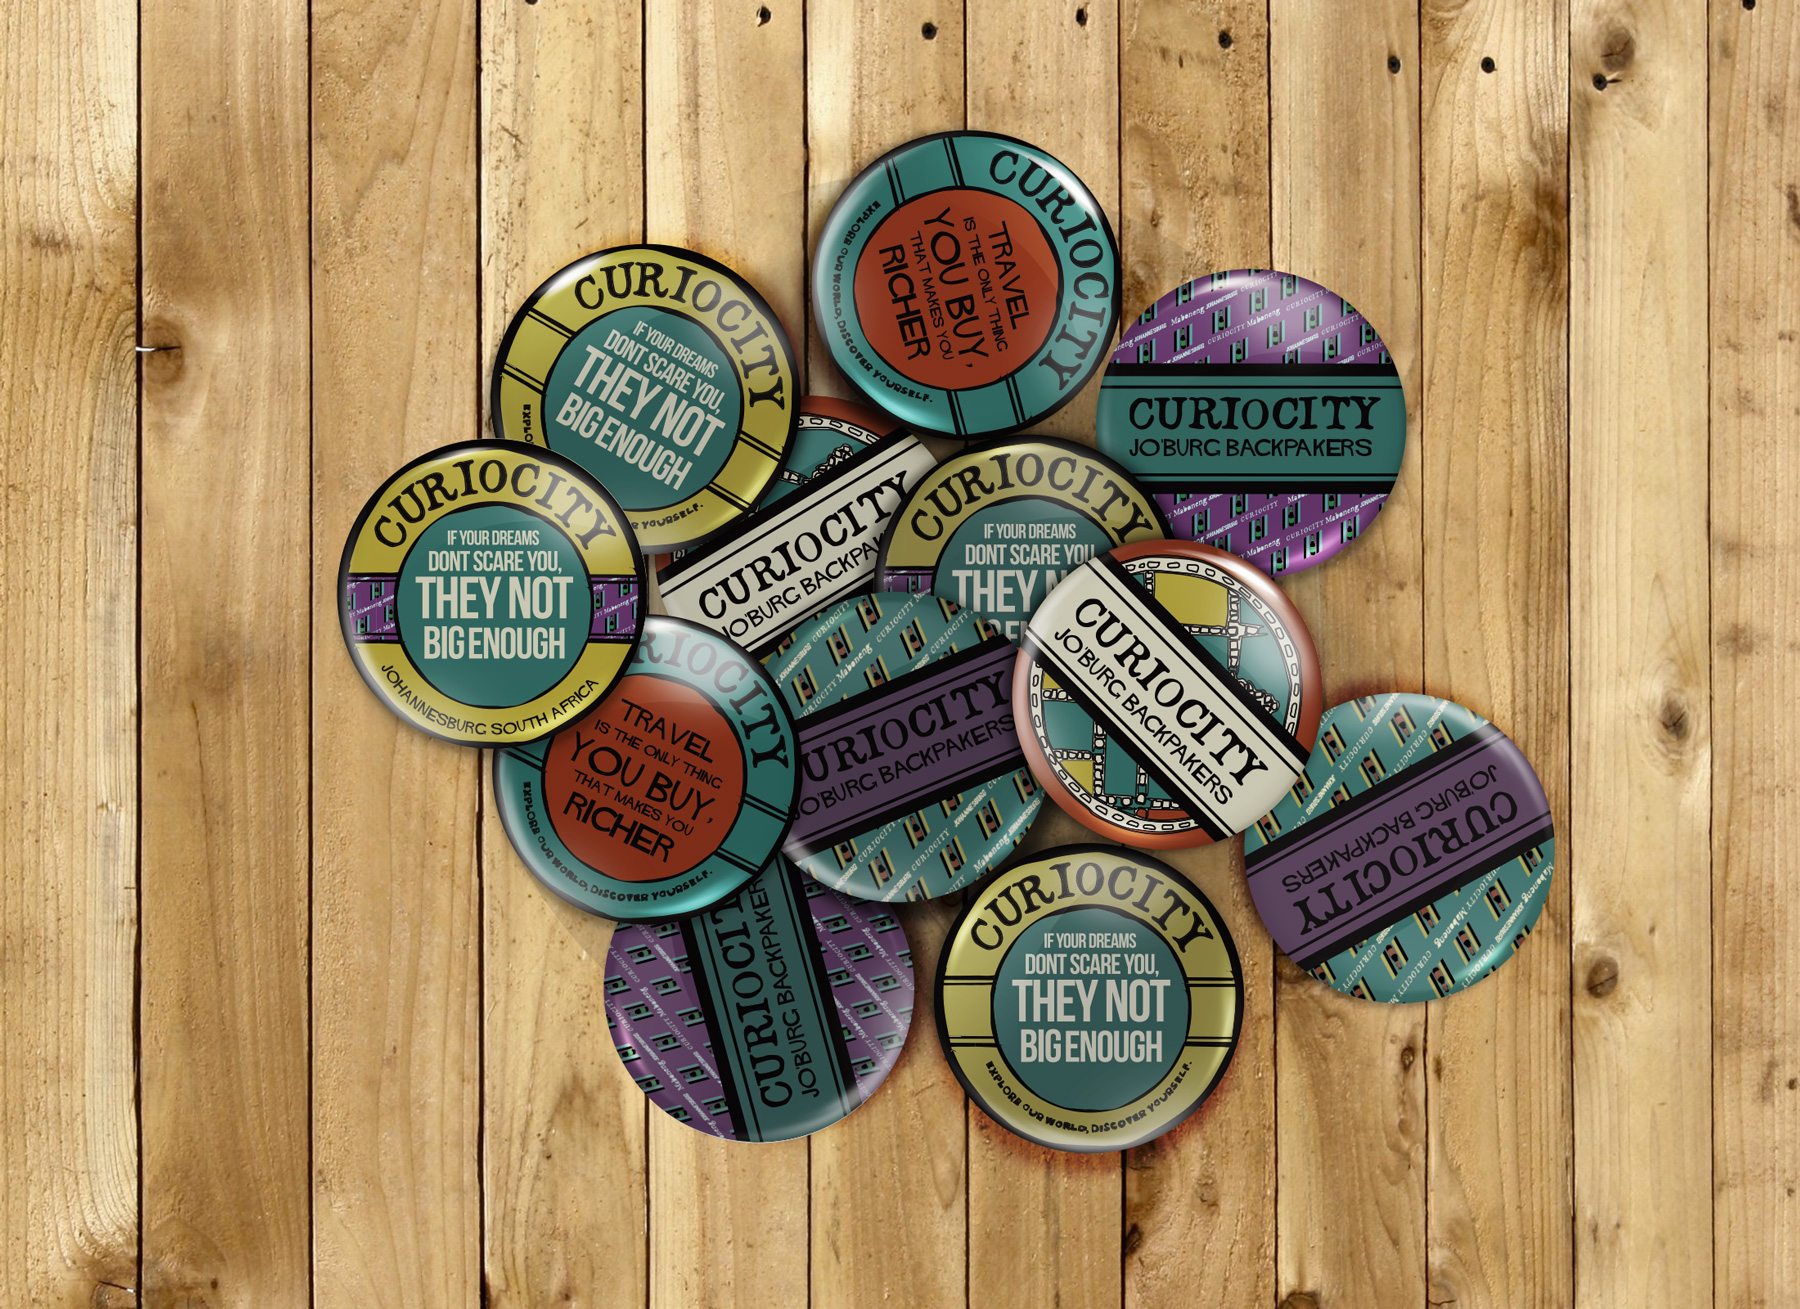 Curioucity_ButtonBadge_110914-2